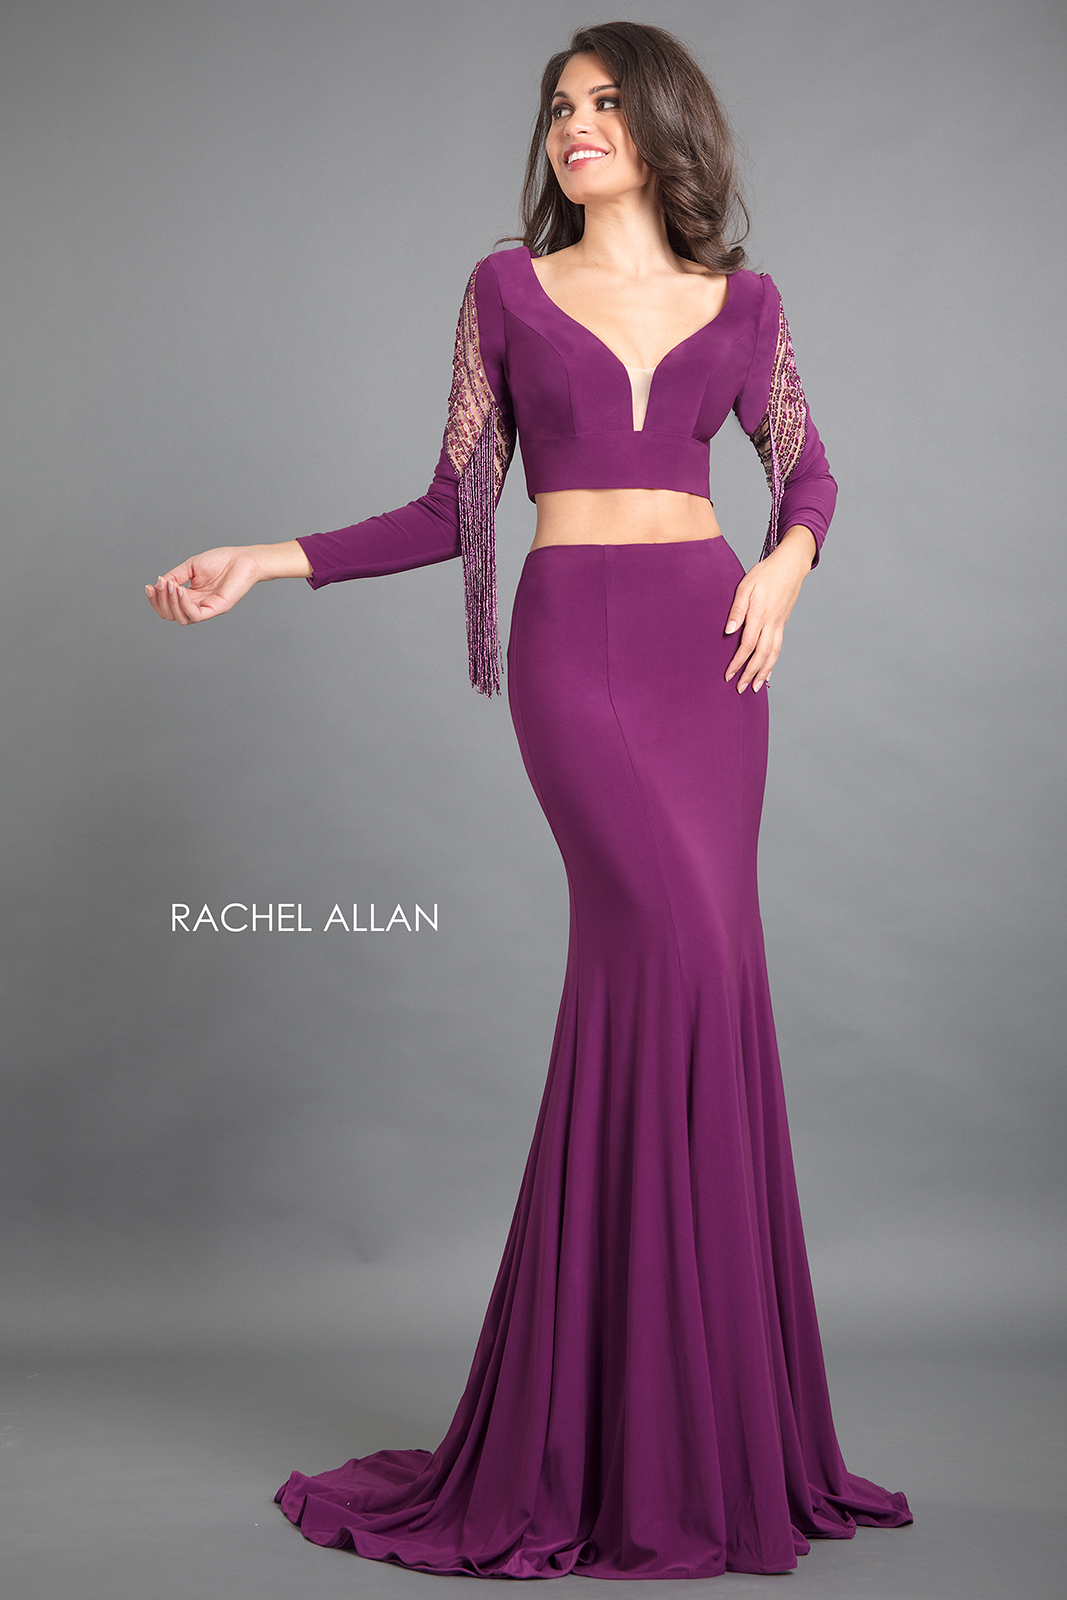 Scoop Neck Fitted Long Couture Dresses in Purple Color